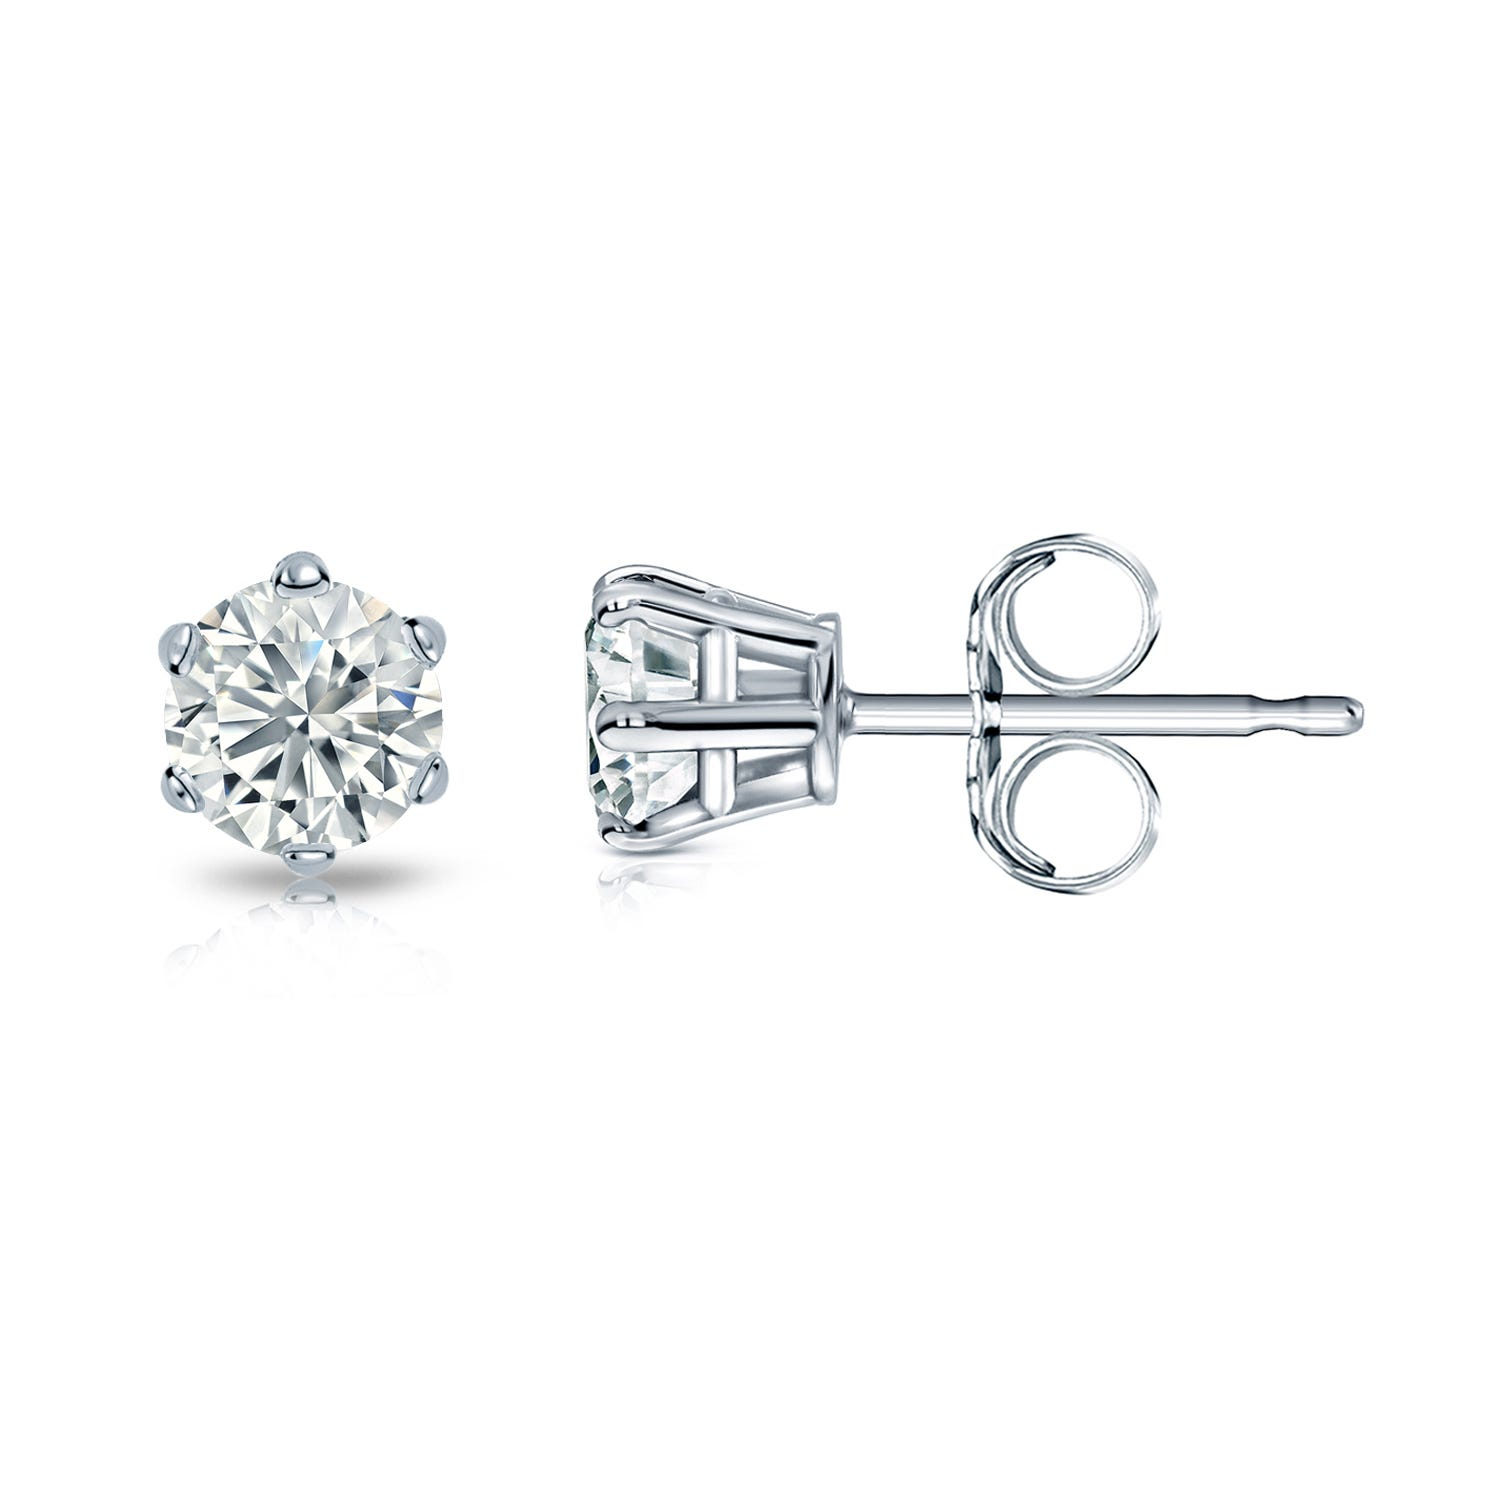 Round Diamond 1/3ctw. (IJ-I2) Solitaire Stud 6-Prong Earrings in 10K White Gold